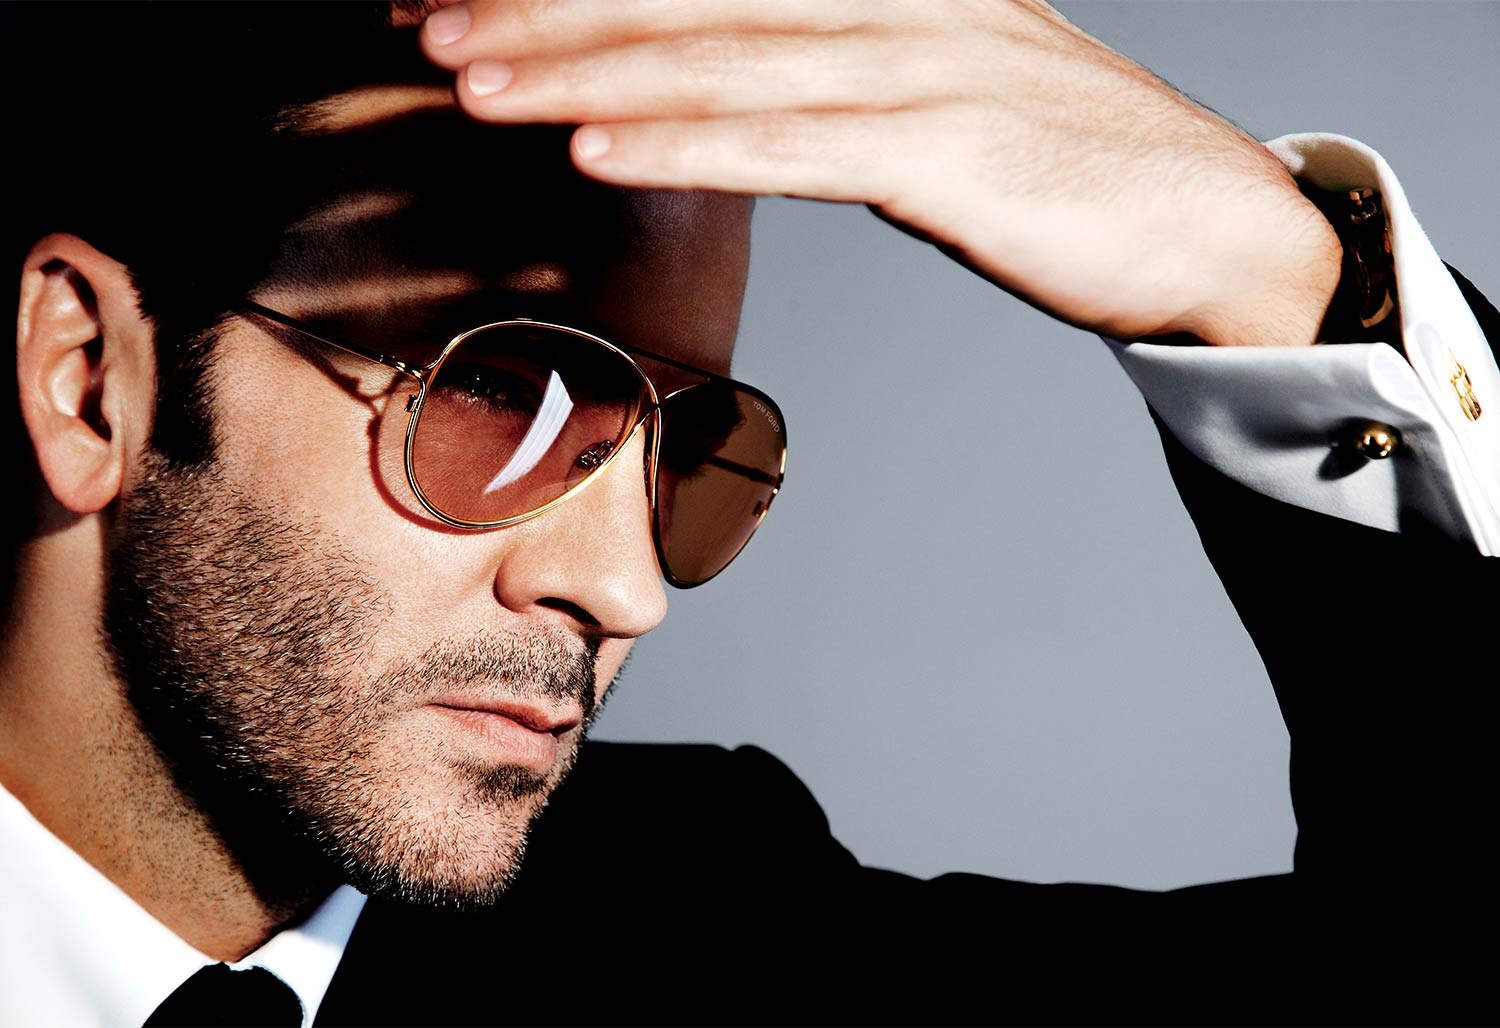 d15af5bc5f56 TOM FORD Private Eyewear Collection - Eye Opticians